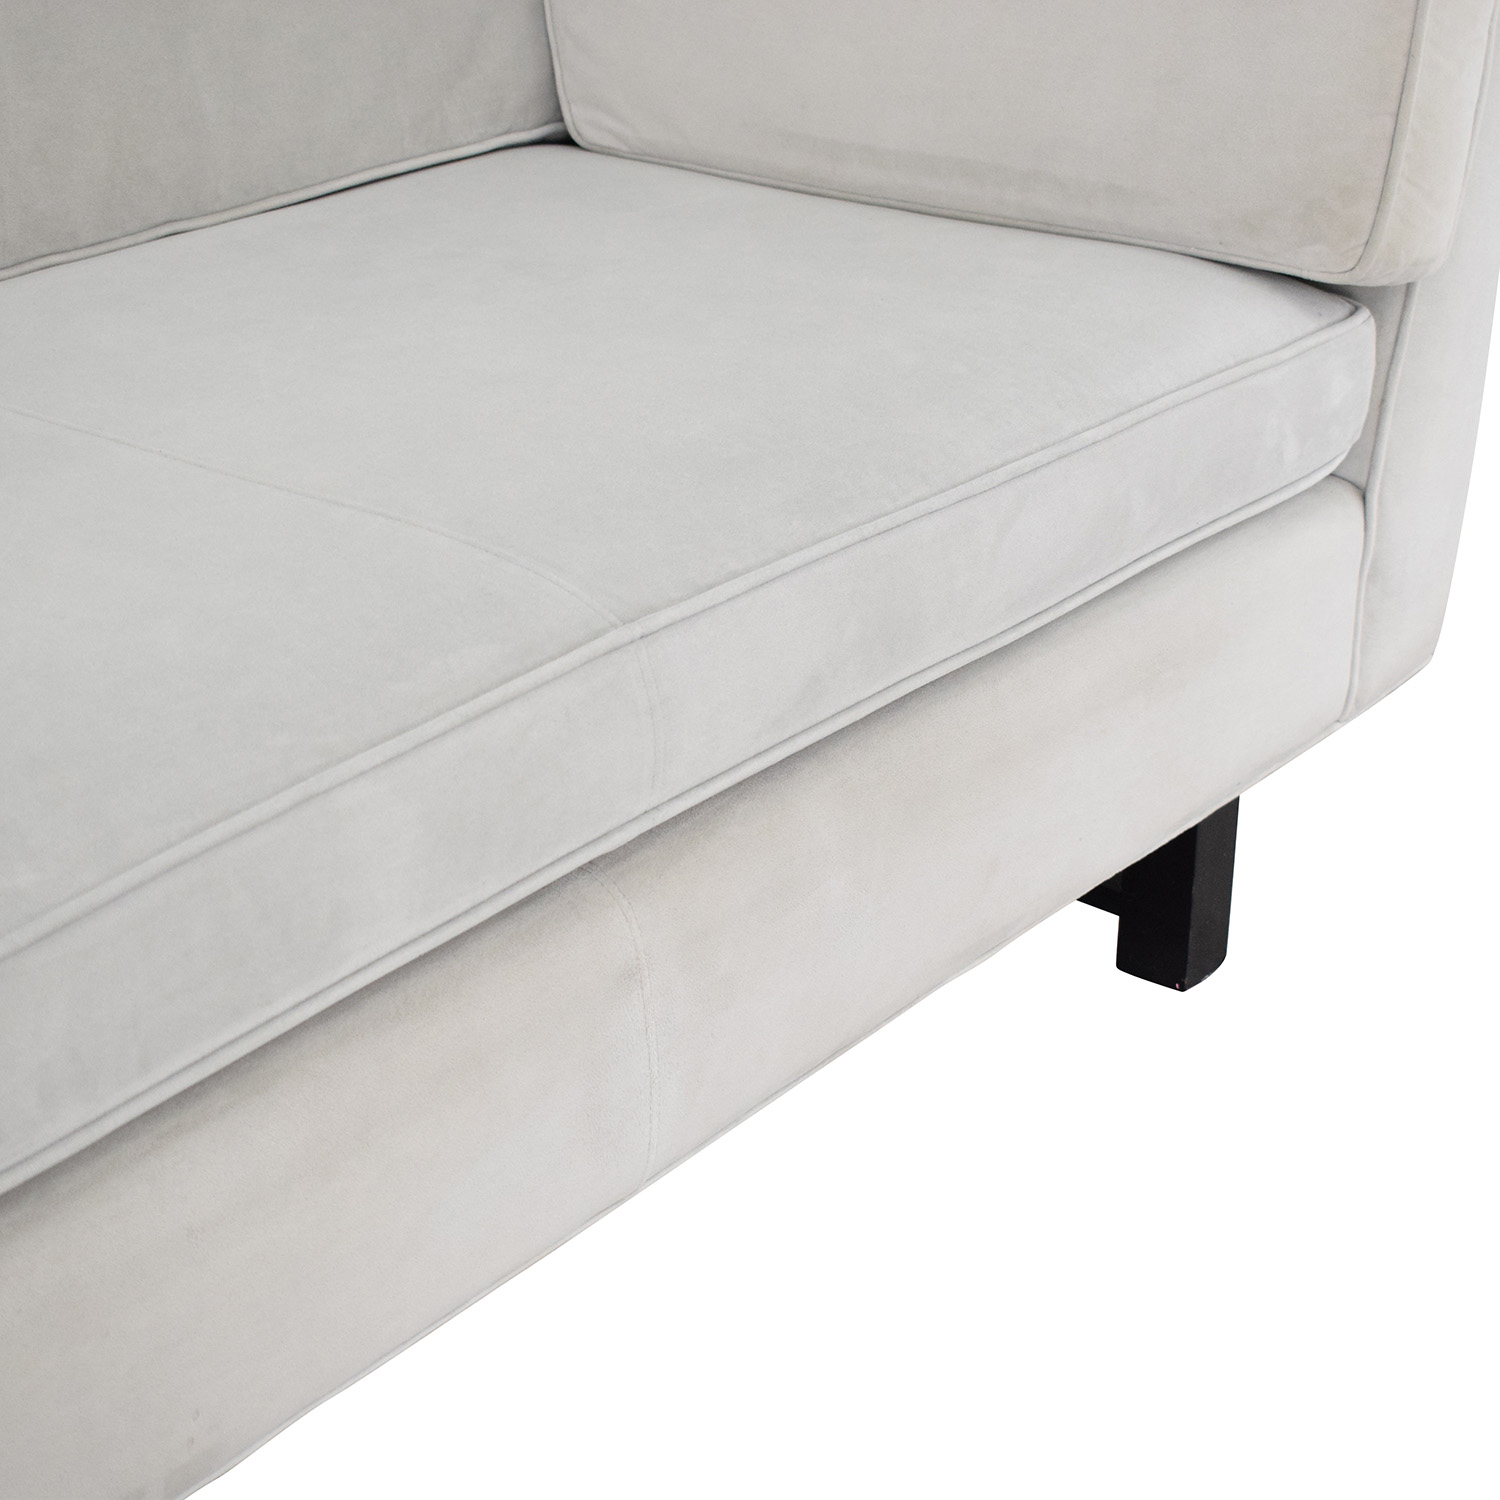 Room & Board Room & Board Naomi Bench Cushion Sofa light gray